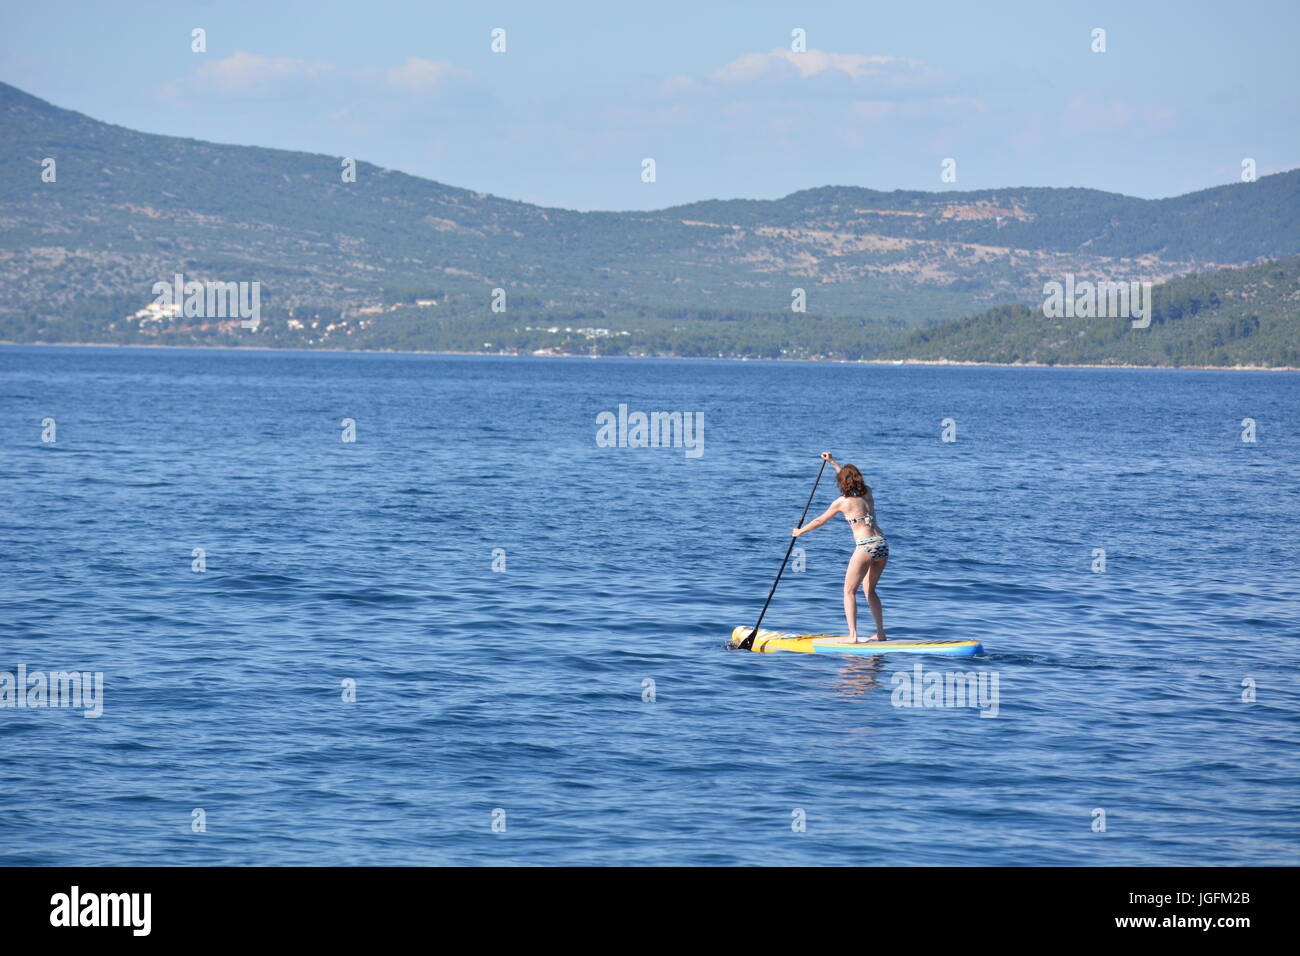 Cres, Croatia - June 18, 2017 - Girl on stand up paddleboard Stock Photo